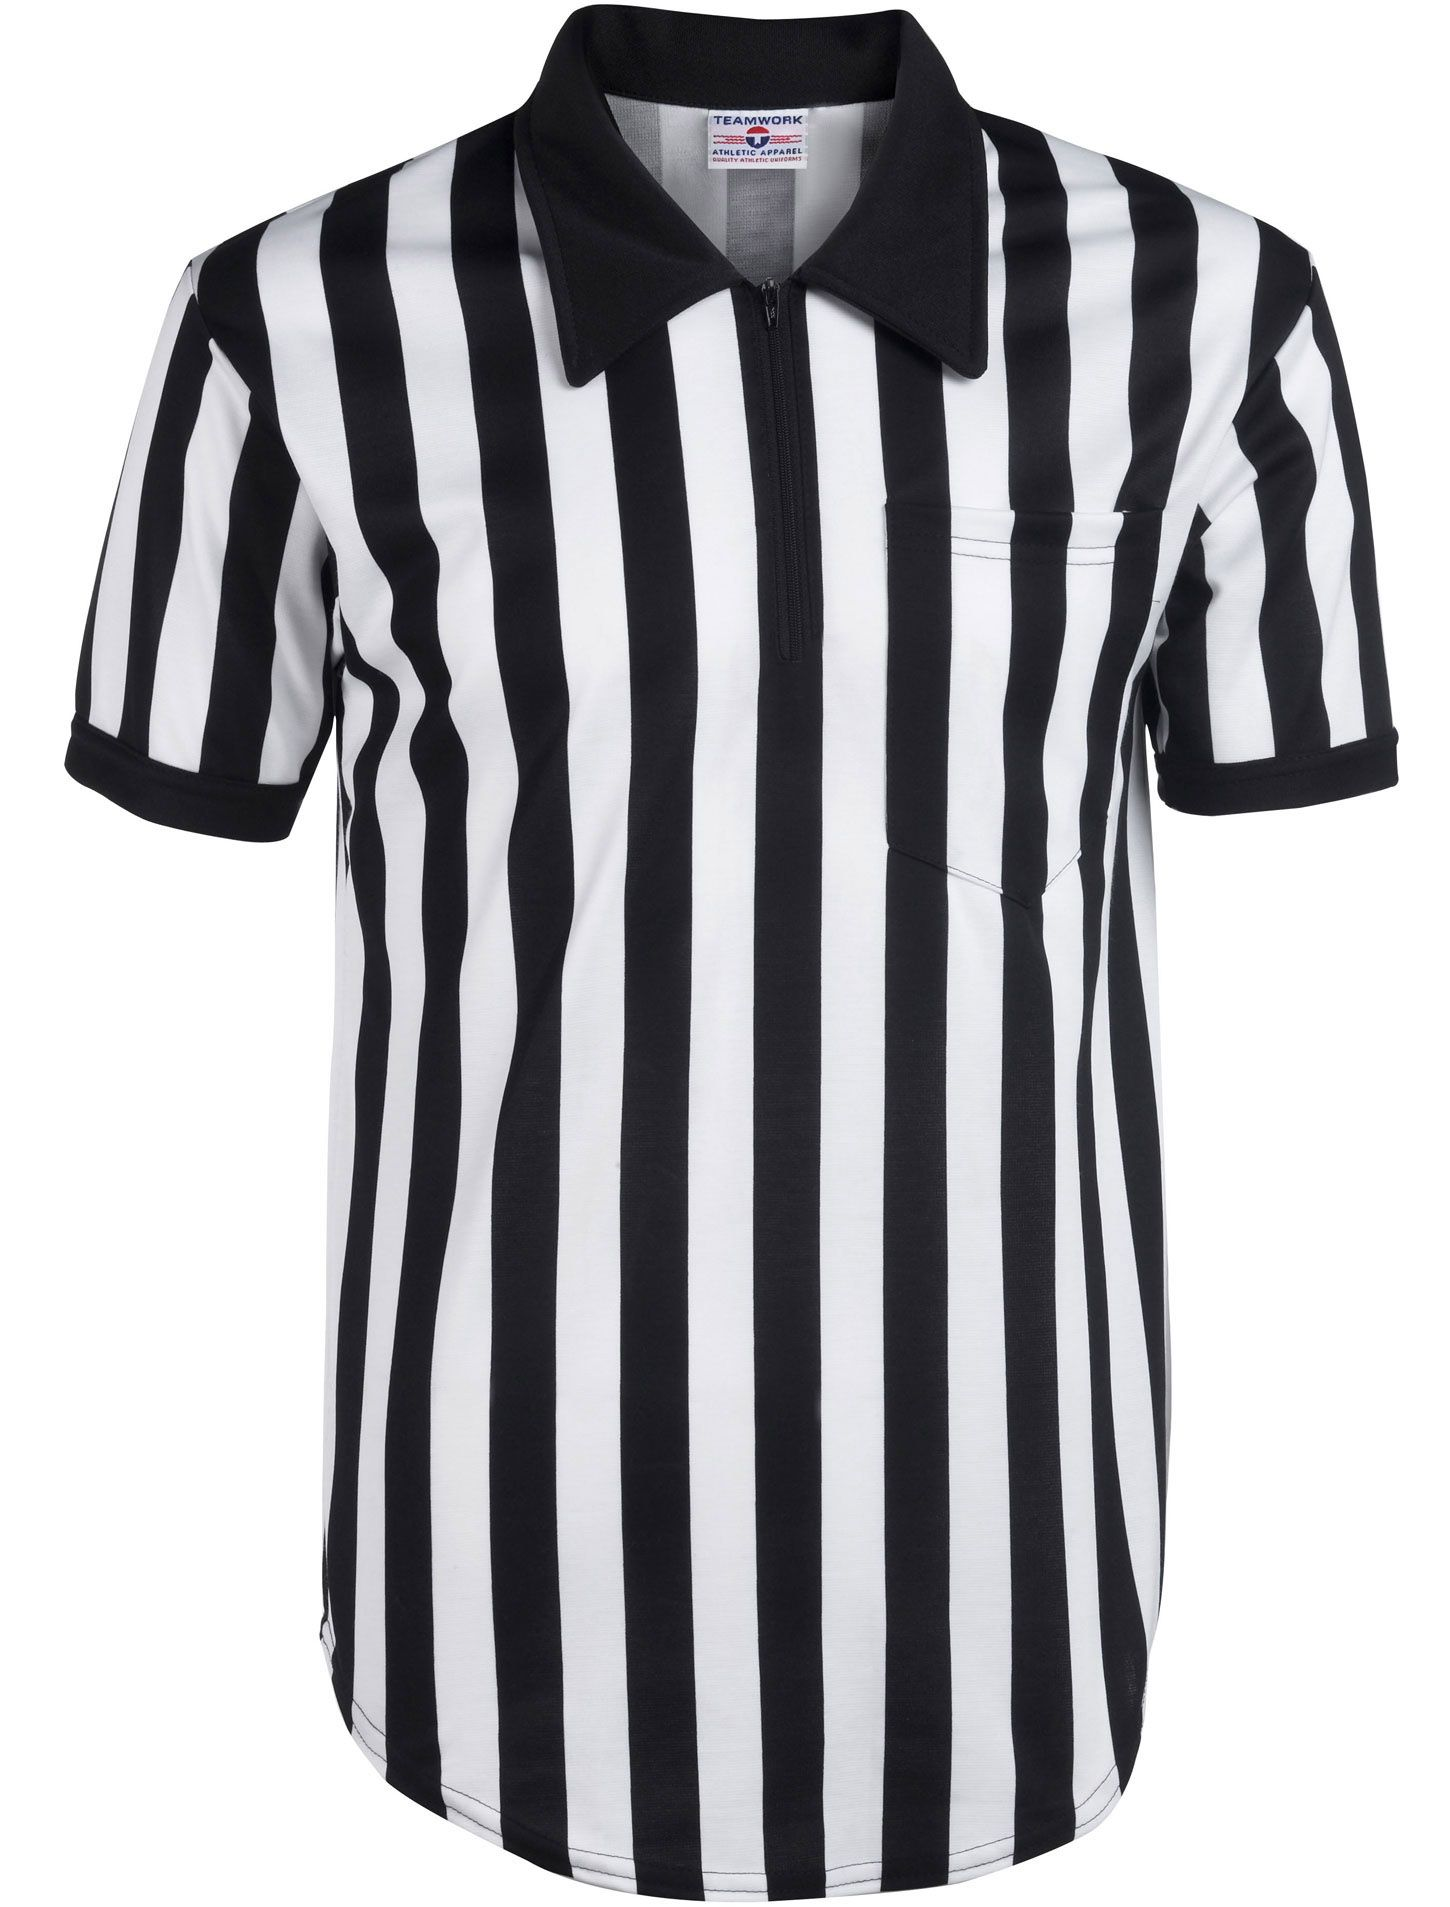 b55e1018e94 Mens Football Referee Shirt $39.09 embroidered with COB logo Could;t find a  blue and white stripe